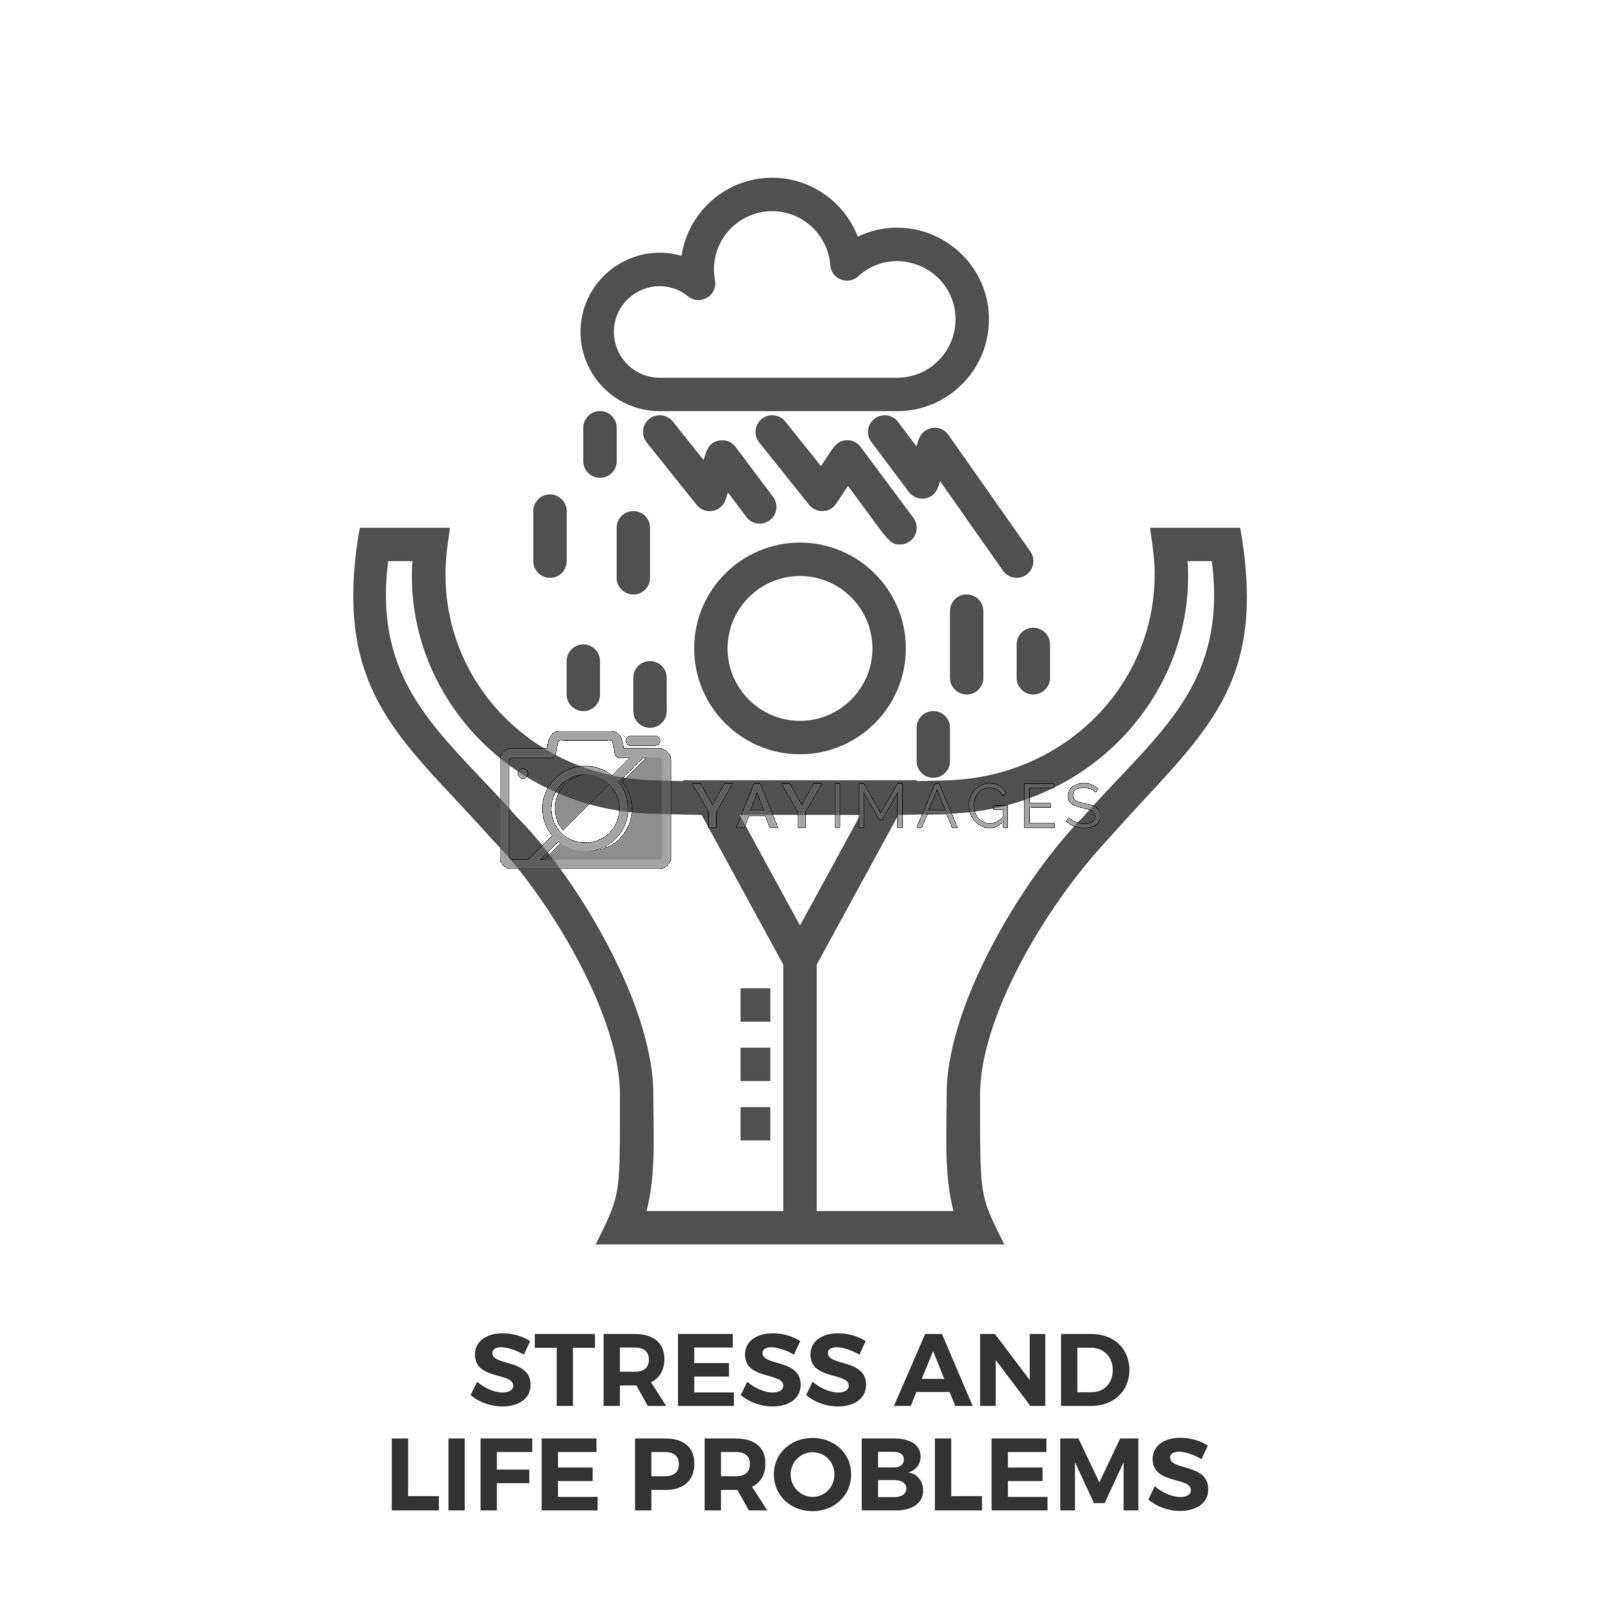 Stress and life problems by smoki